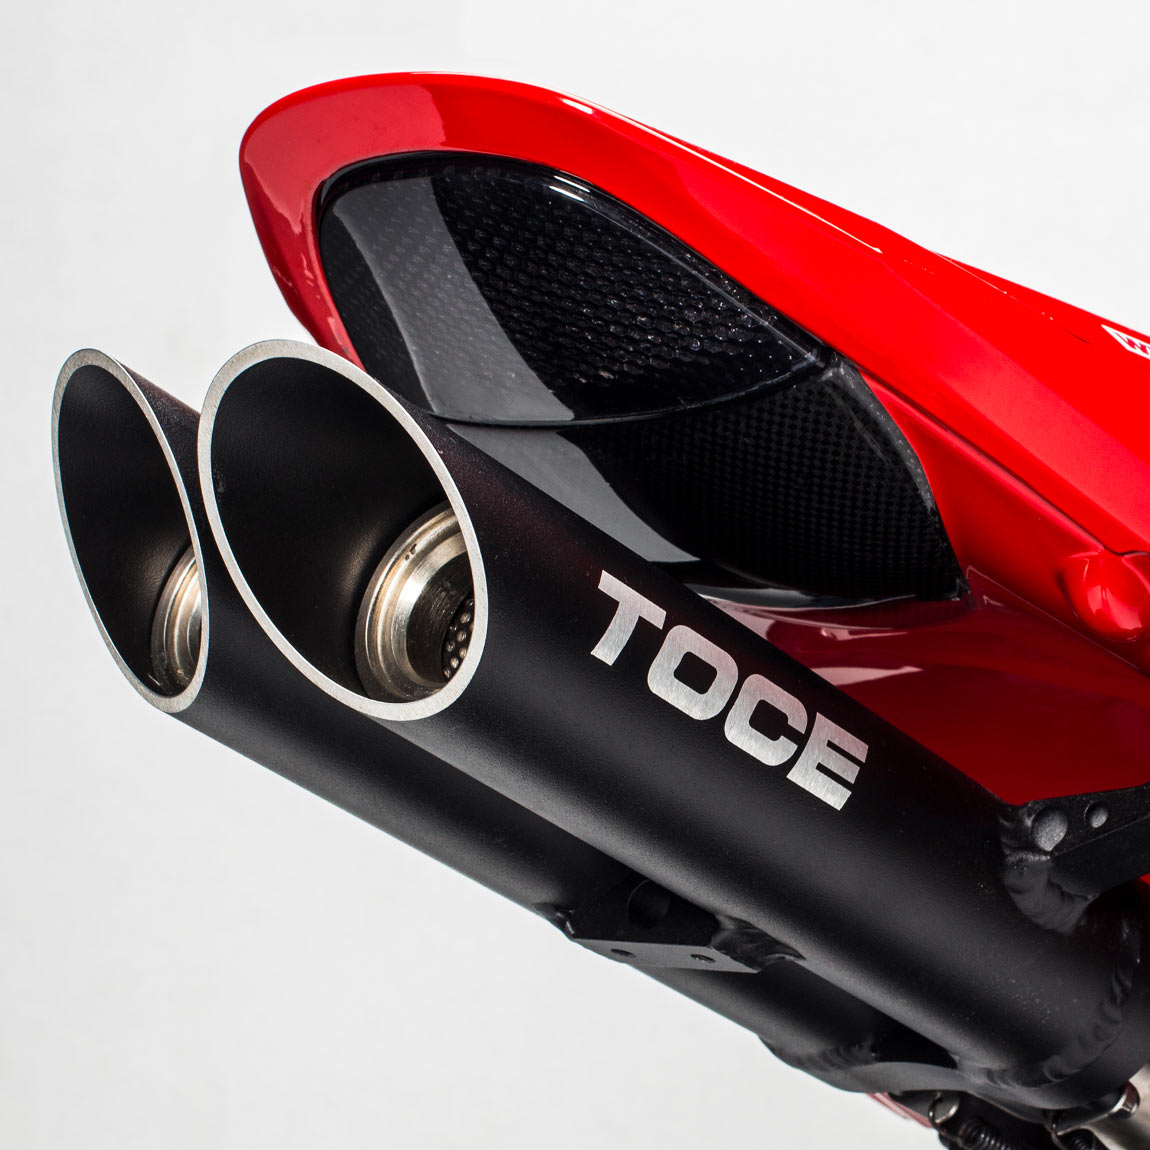 2007-2012 Honda CBR600RR displaying the TST integrated tail light that helped make TST popular.